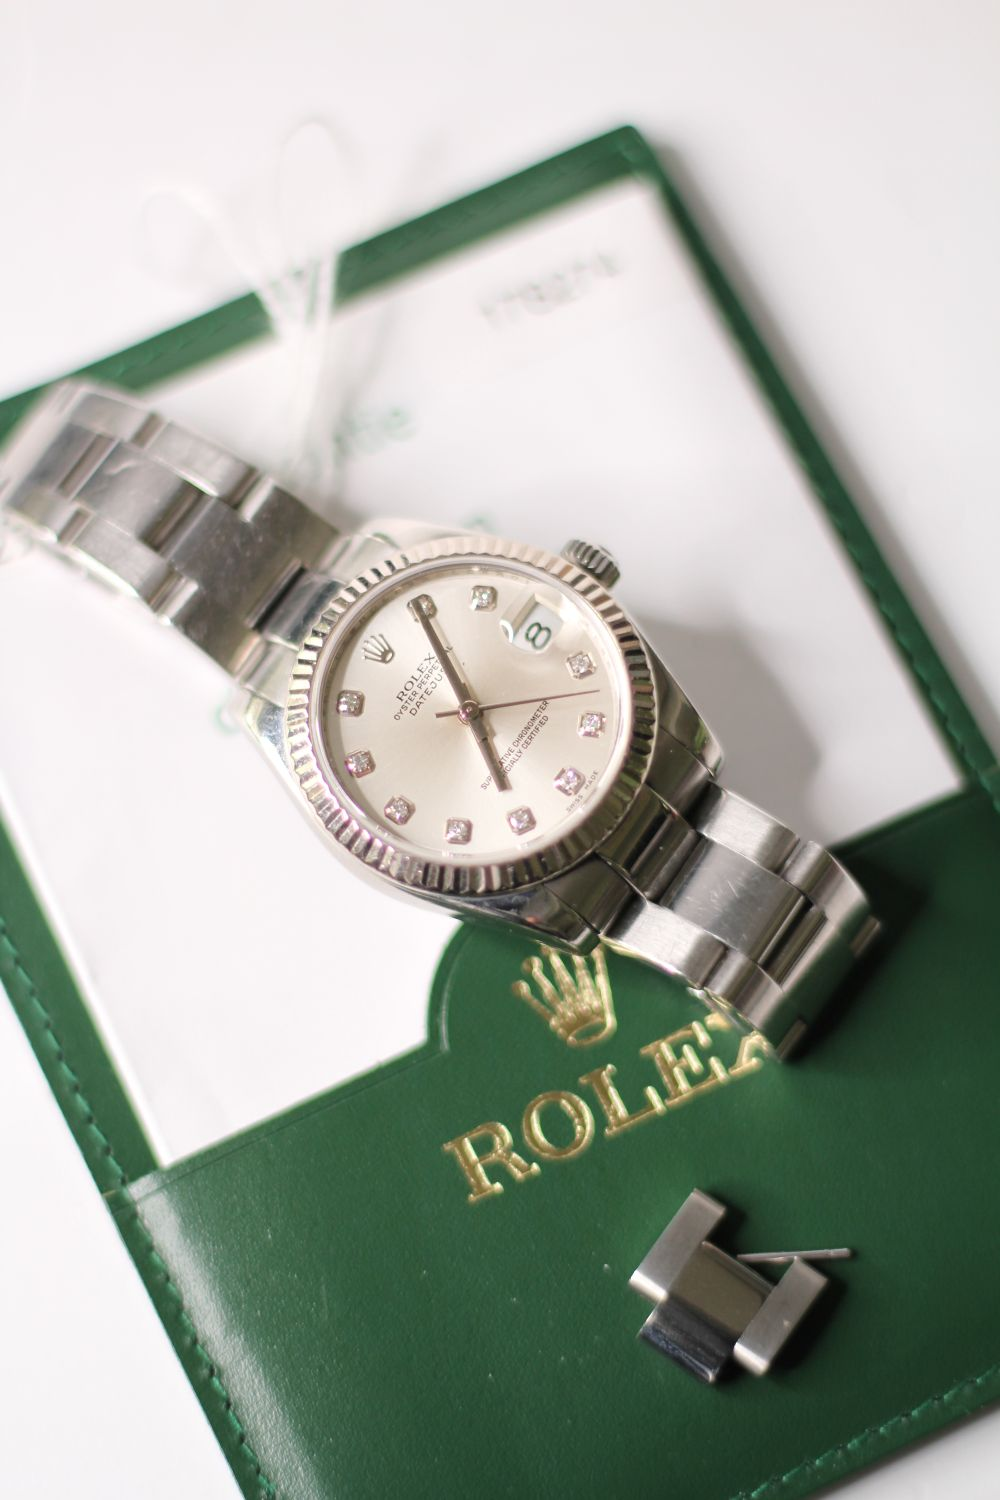 ROLEX DIAMOND DIAL DATEJUST WRISTWATCH REF 178274 W/PAPERS, circular silver dial with diamond hour - Image 4 of 5